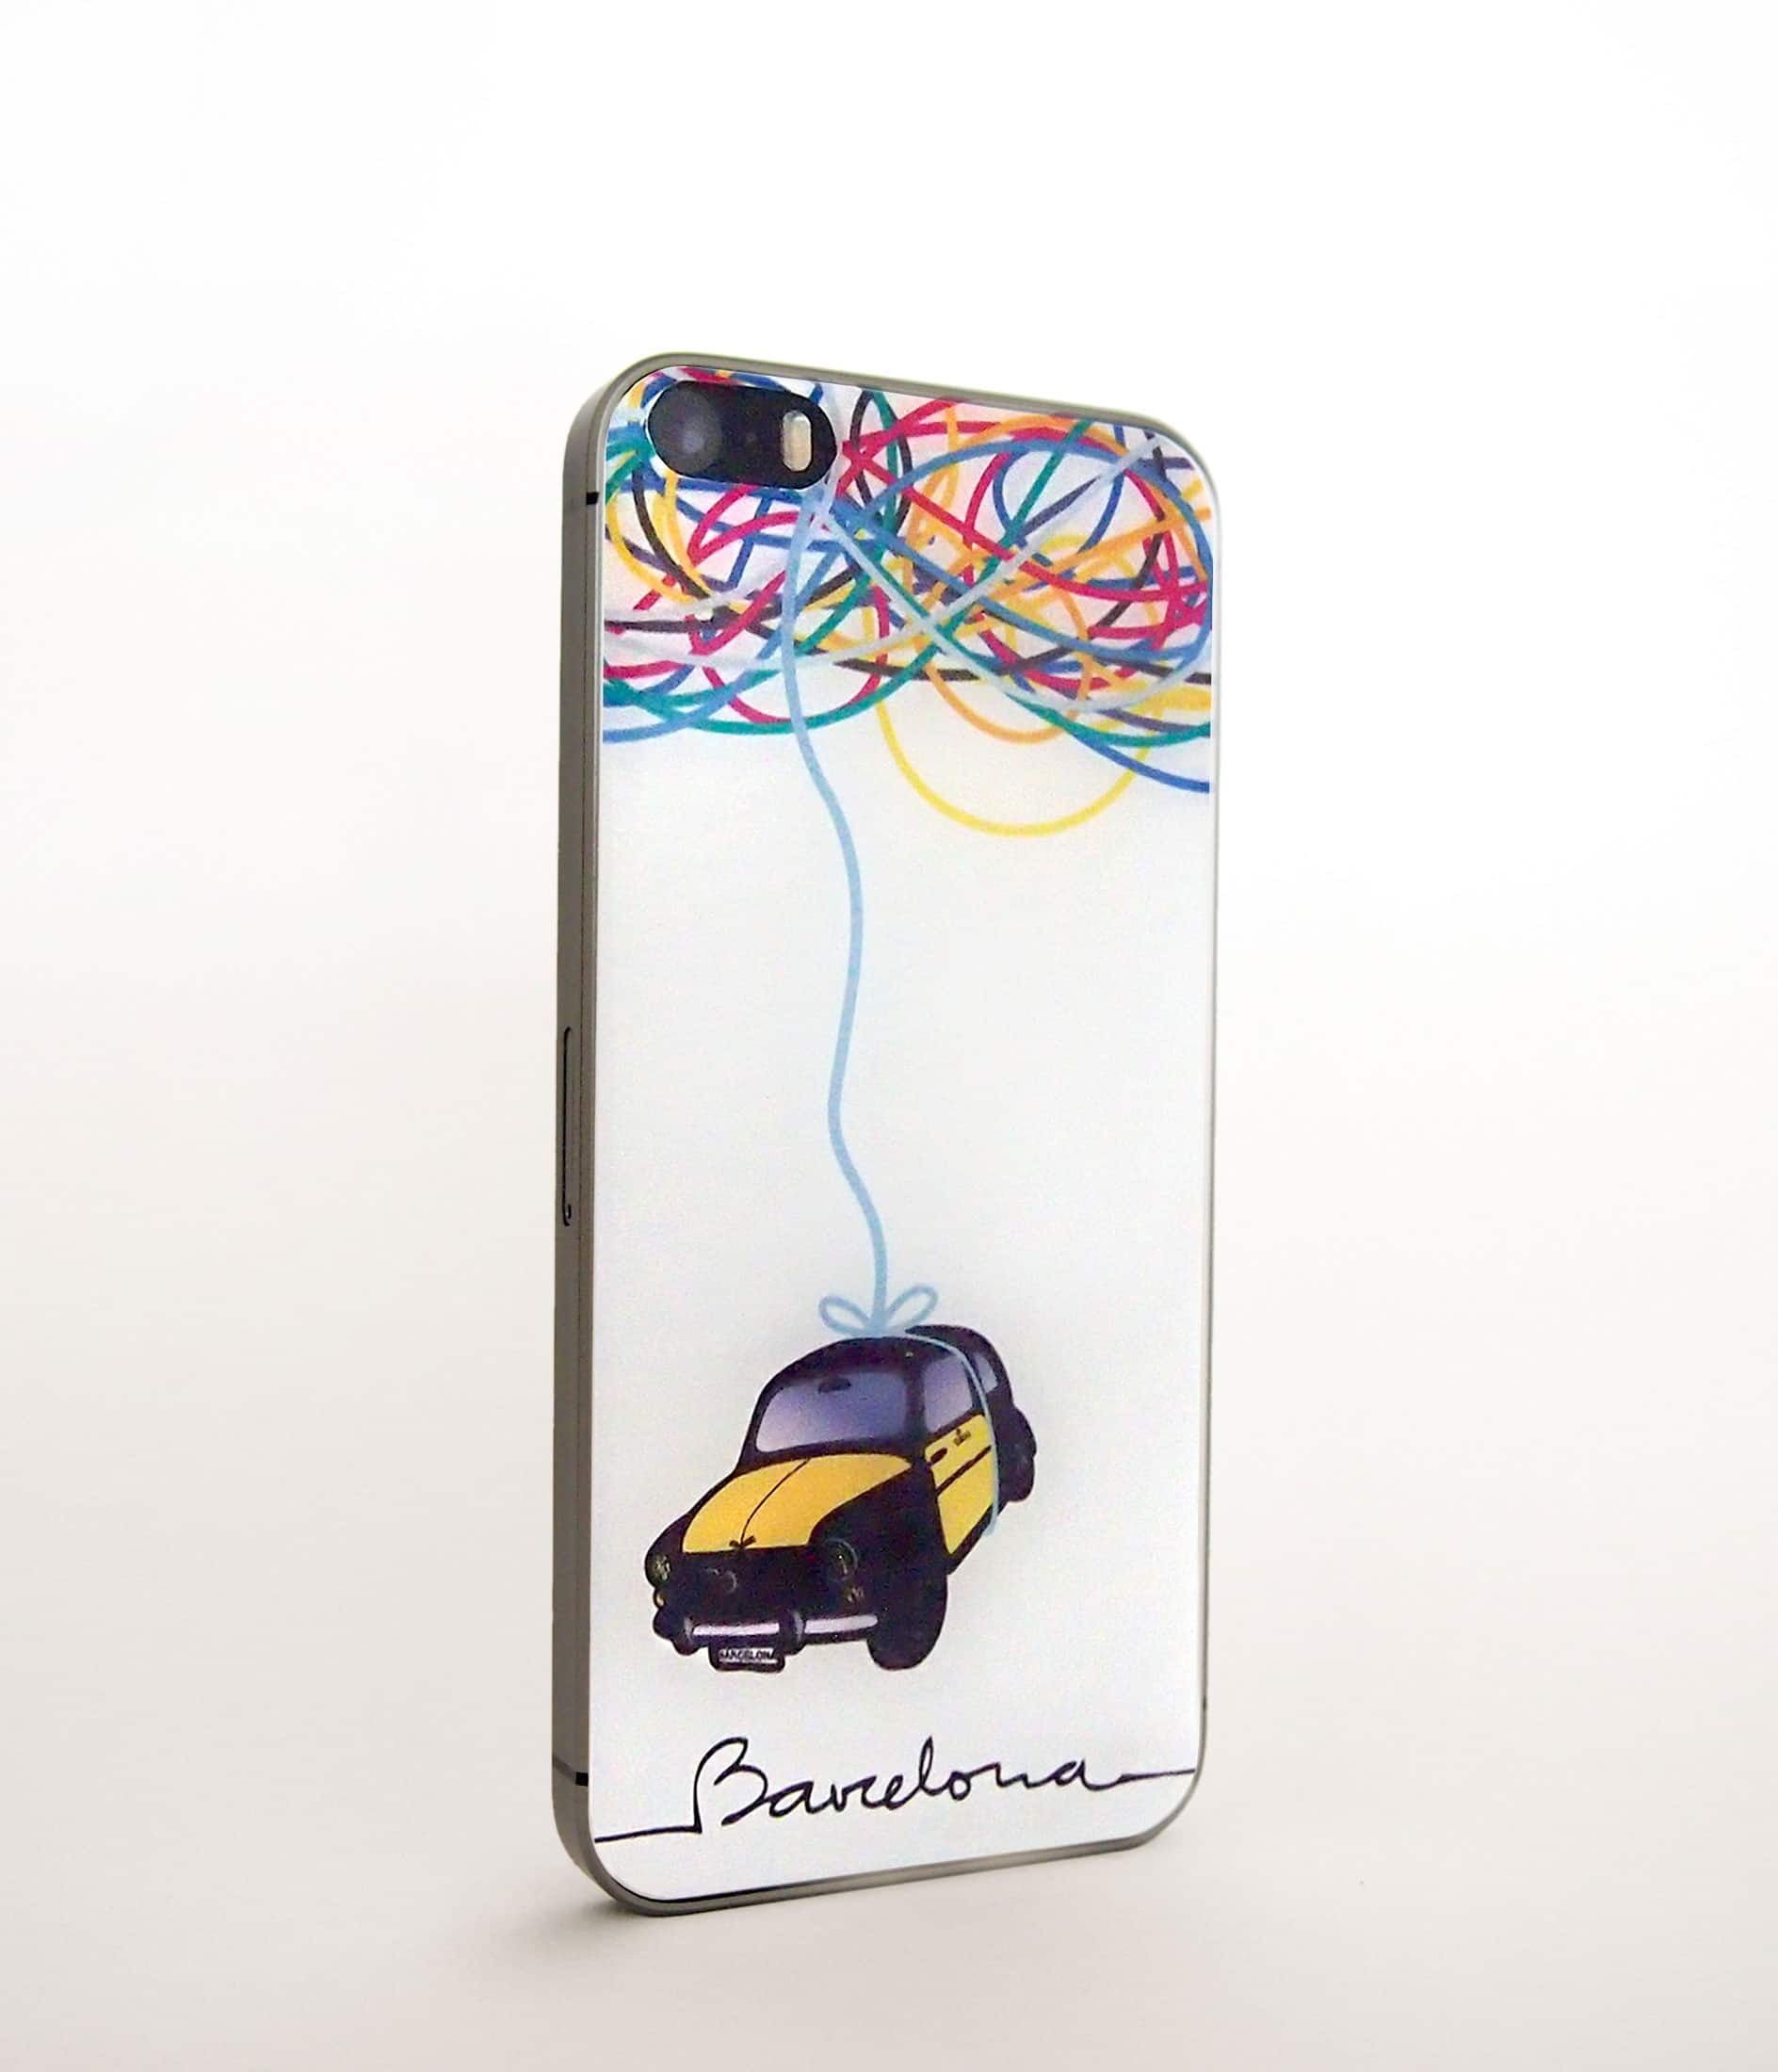 Taxi White iPhone Sticker